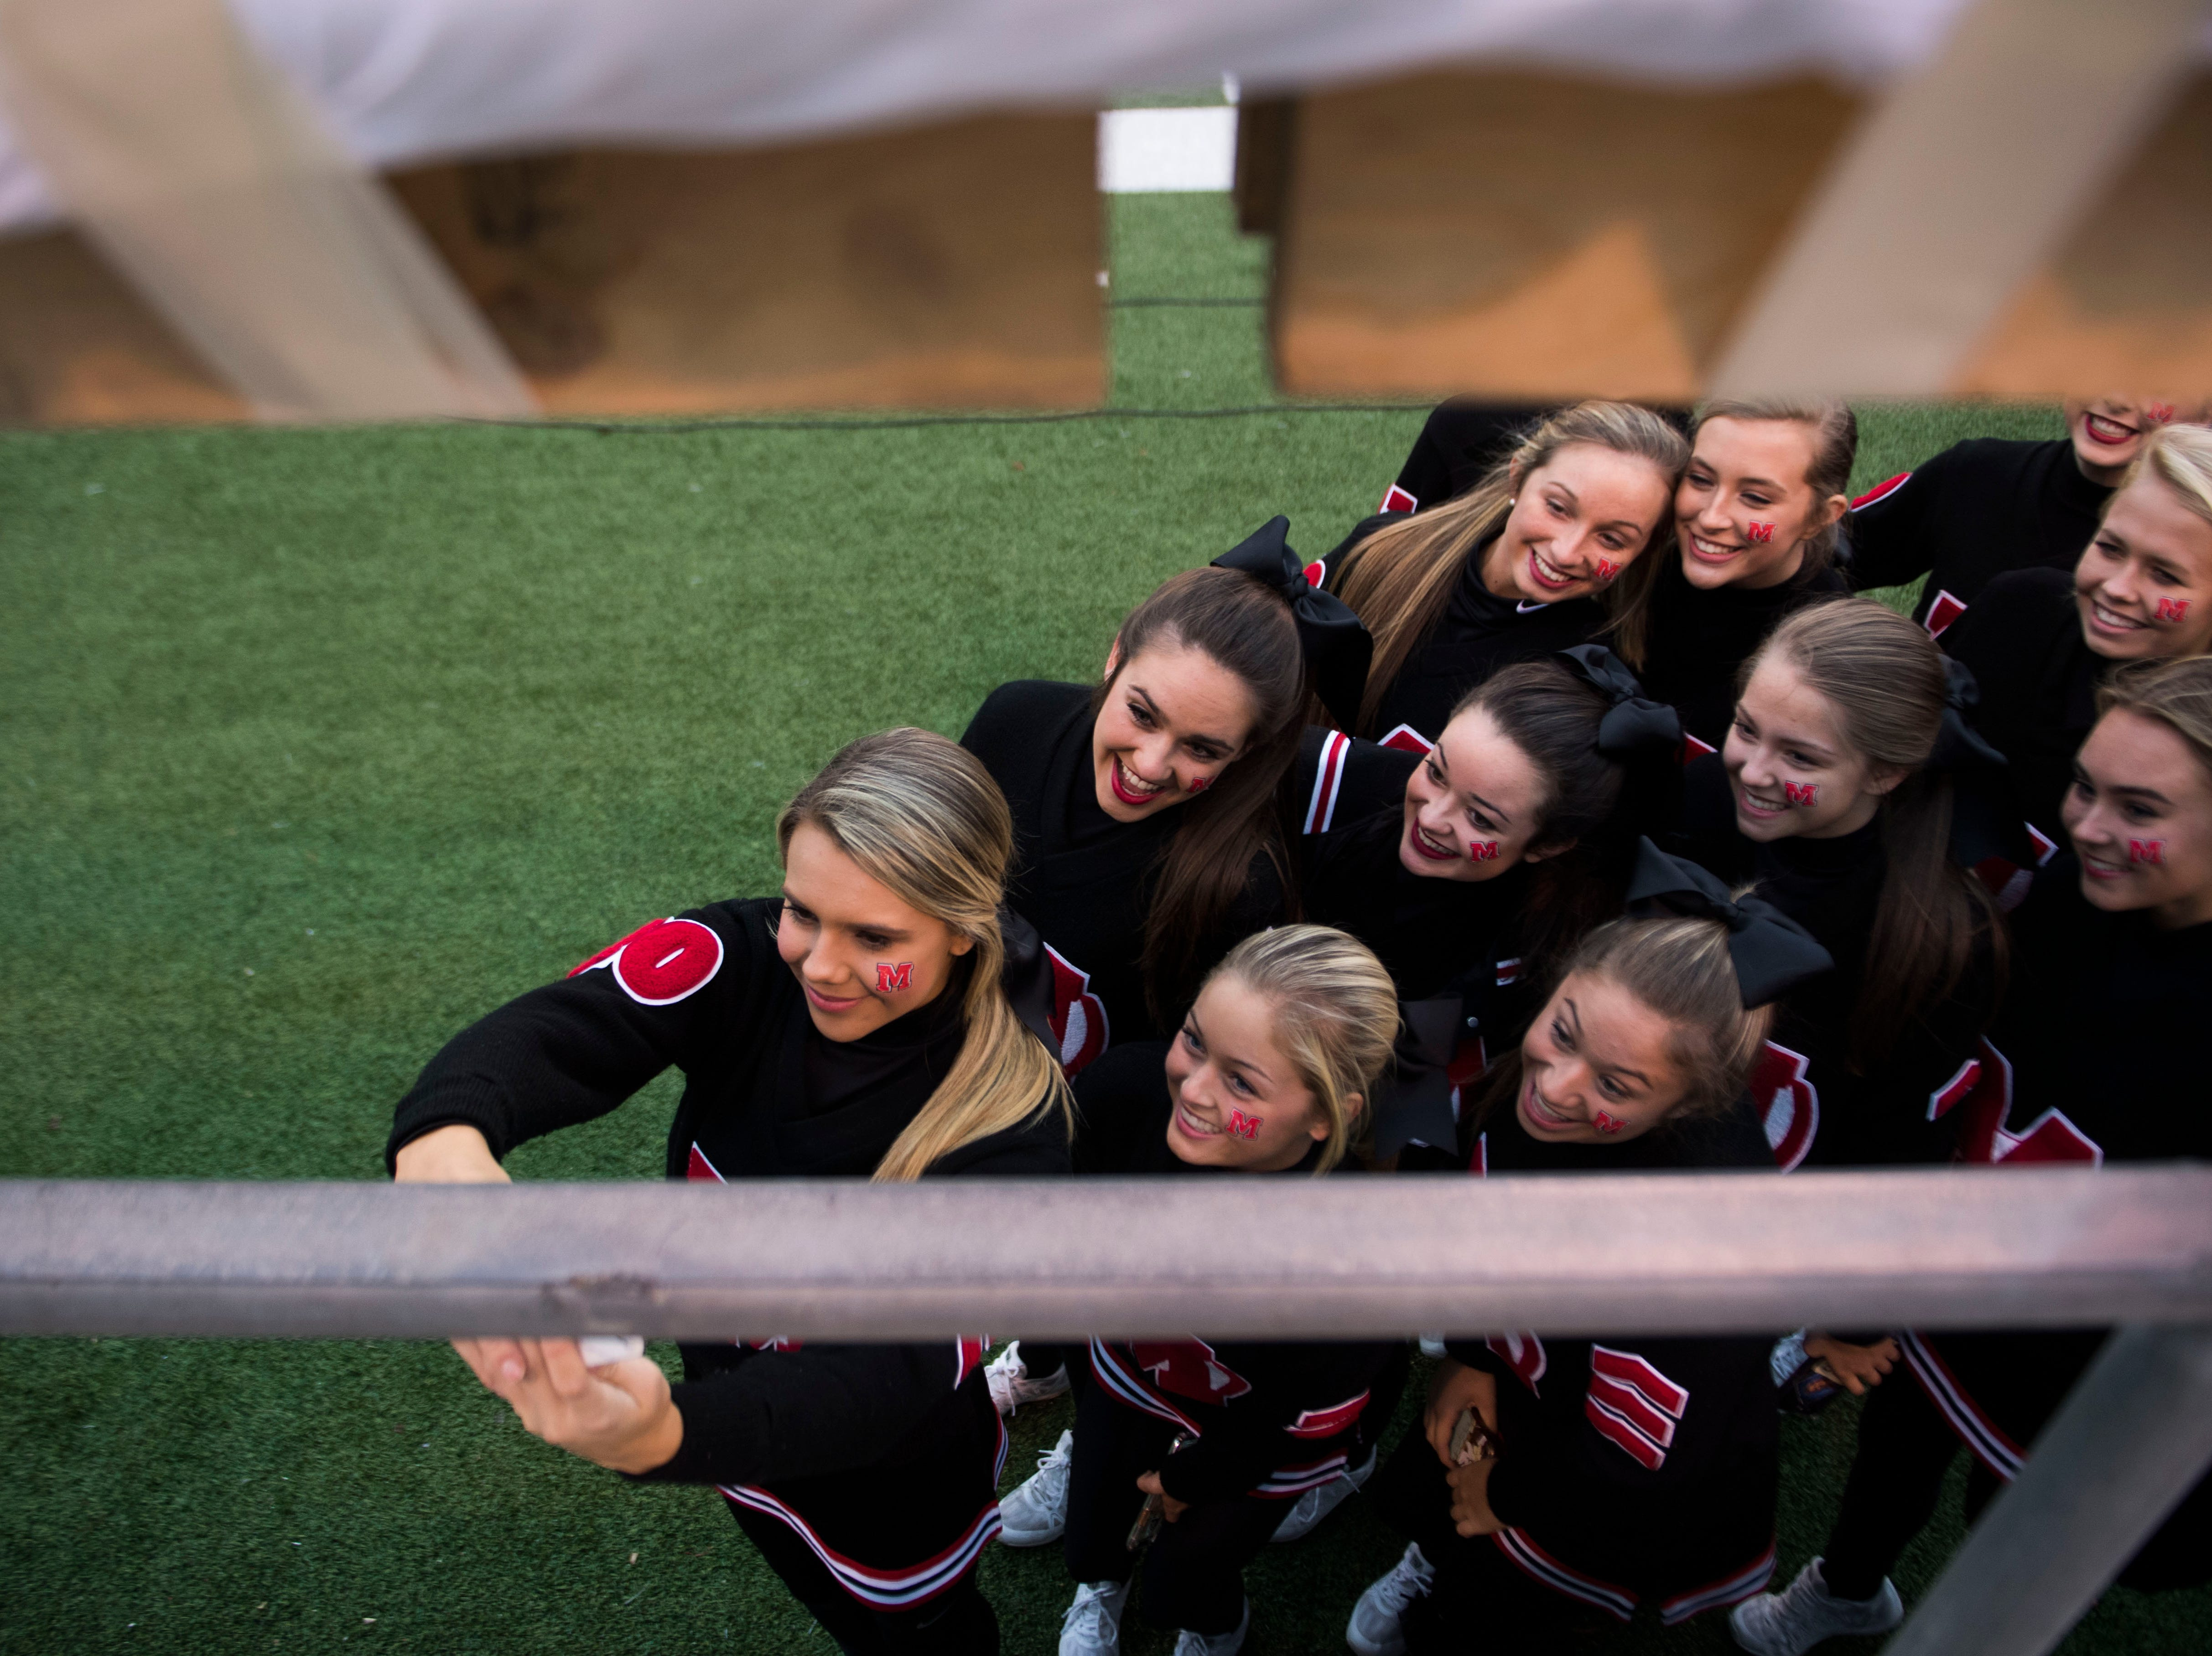 Maryville cheerleaders take a photo before a first round playoff game between Maryville and Bearden at Maryville, Friday, Nov. 2, 2018.